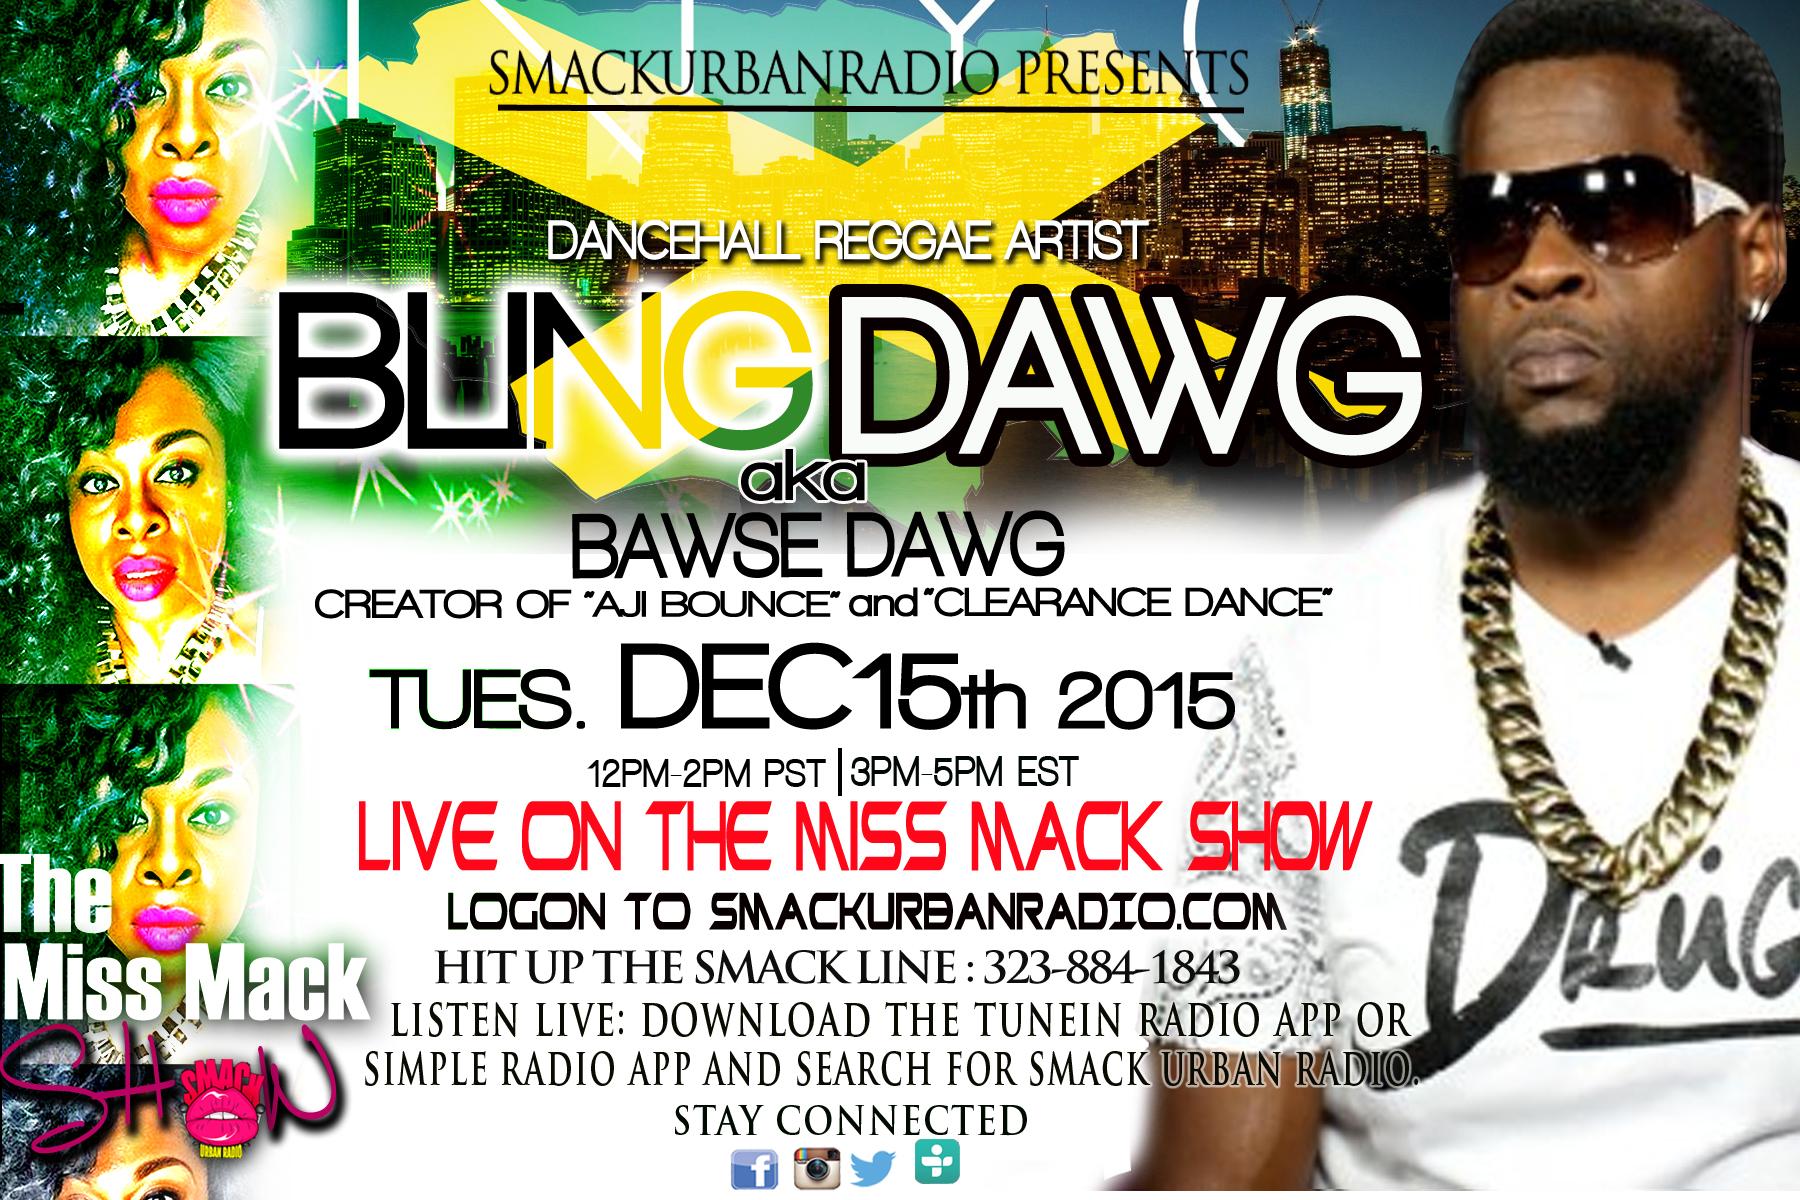 Shannon Mack interviews Bling Dawgz